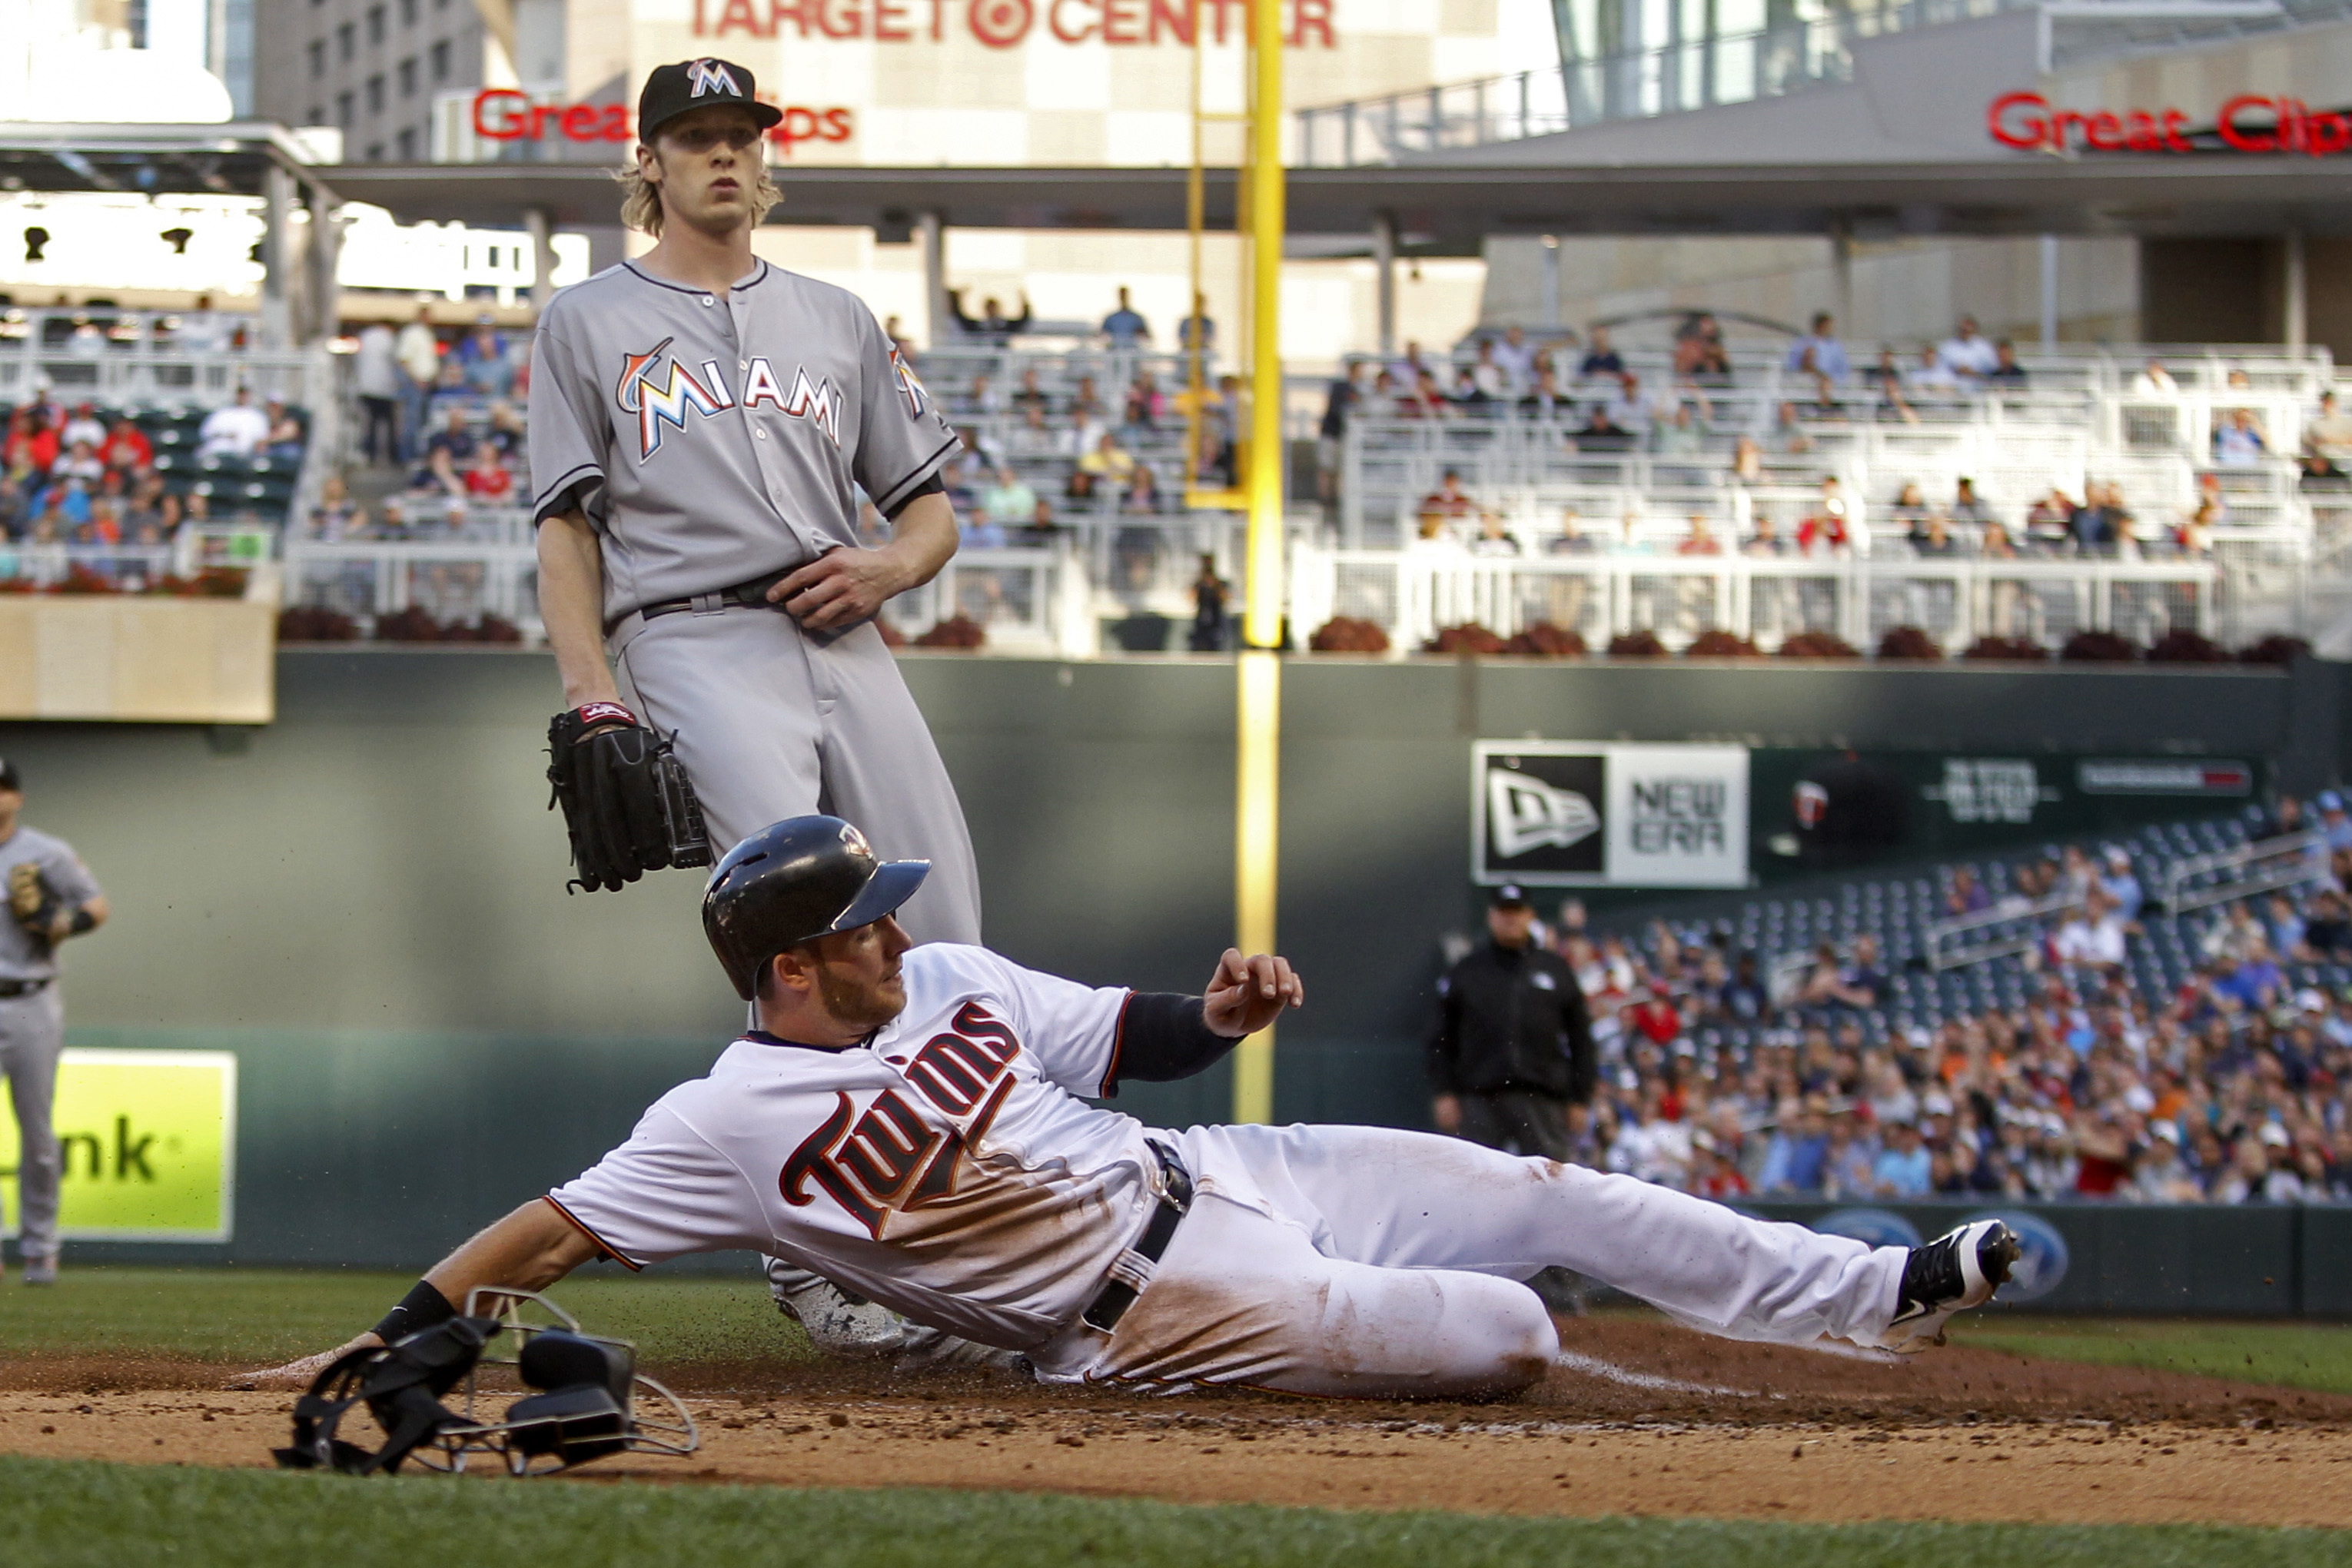 Minnesota Twins' Robbie Grossman scores on a wild pitch by Miami Marlins starting pitcher Adam Conley in the first inning of a baseball game Tuesday, June 7, 2016, in Minneapolis. (AP Photo/Bruce Kluckhohn)